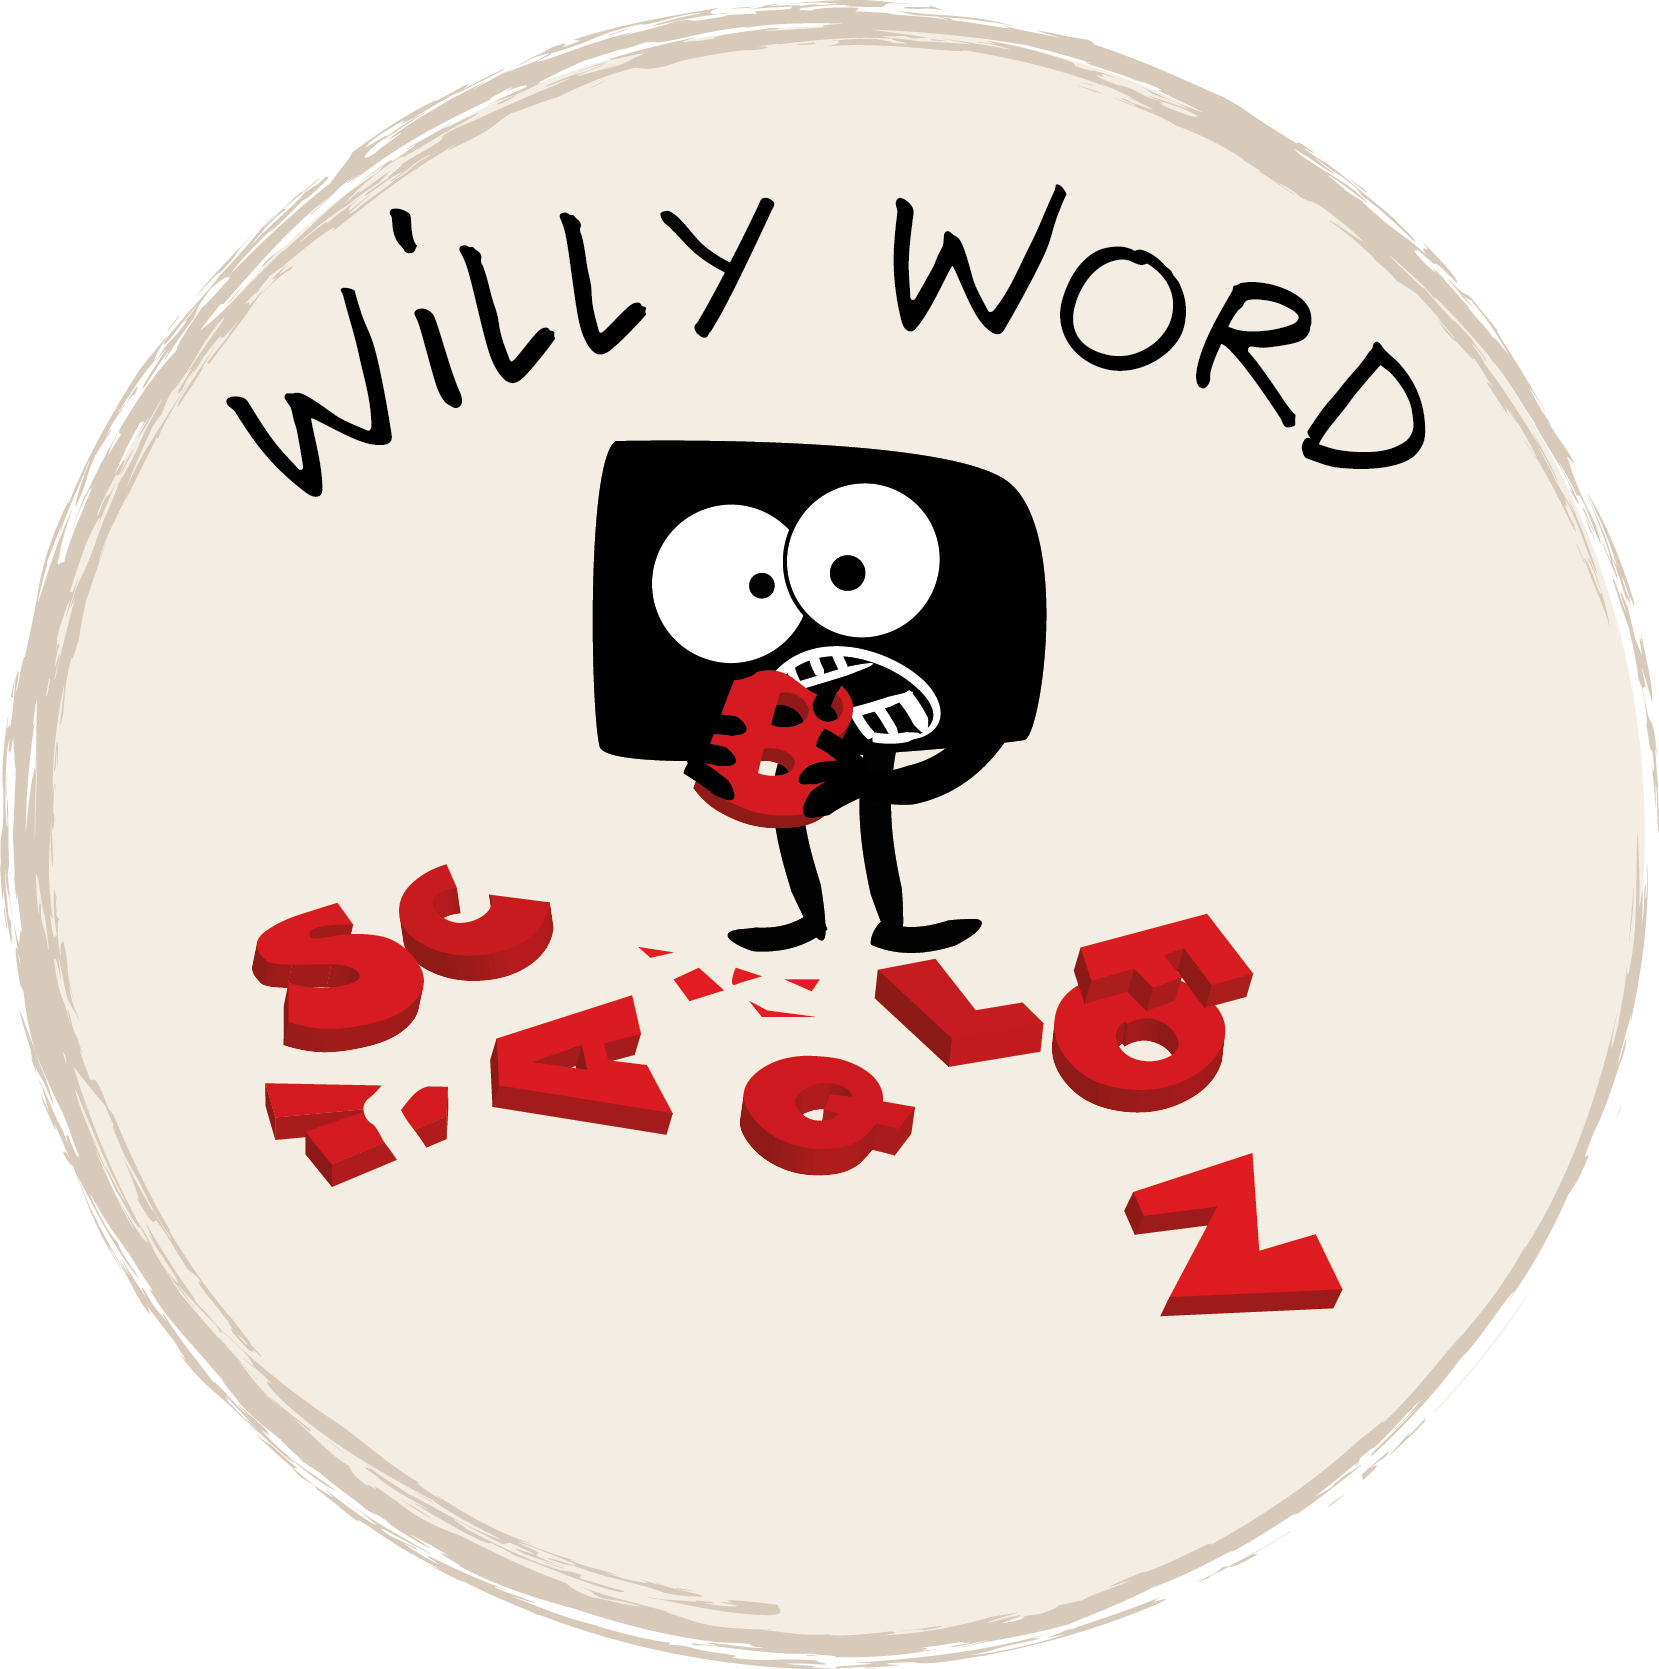 Logotipo – Willy Word